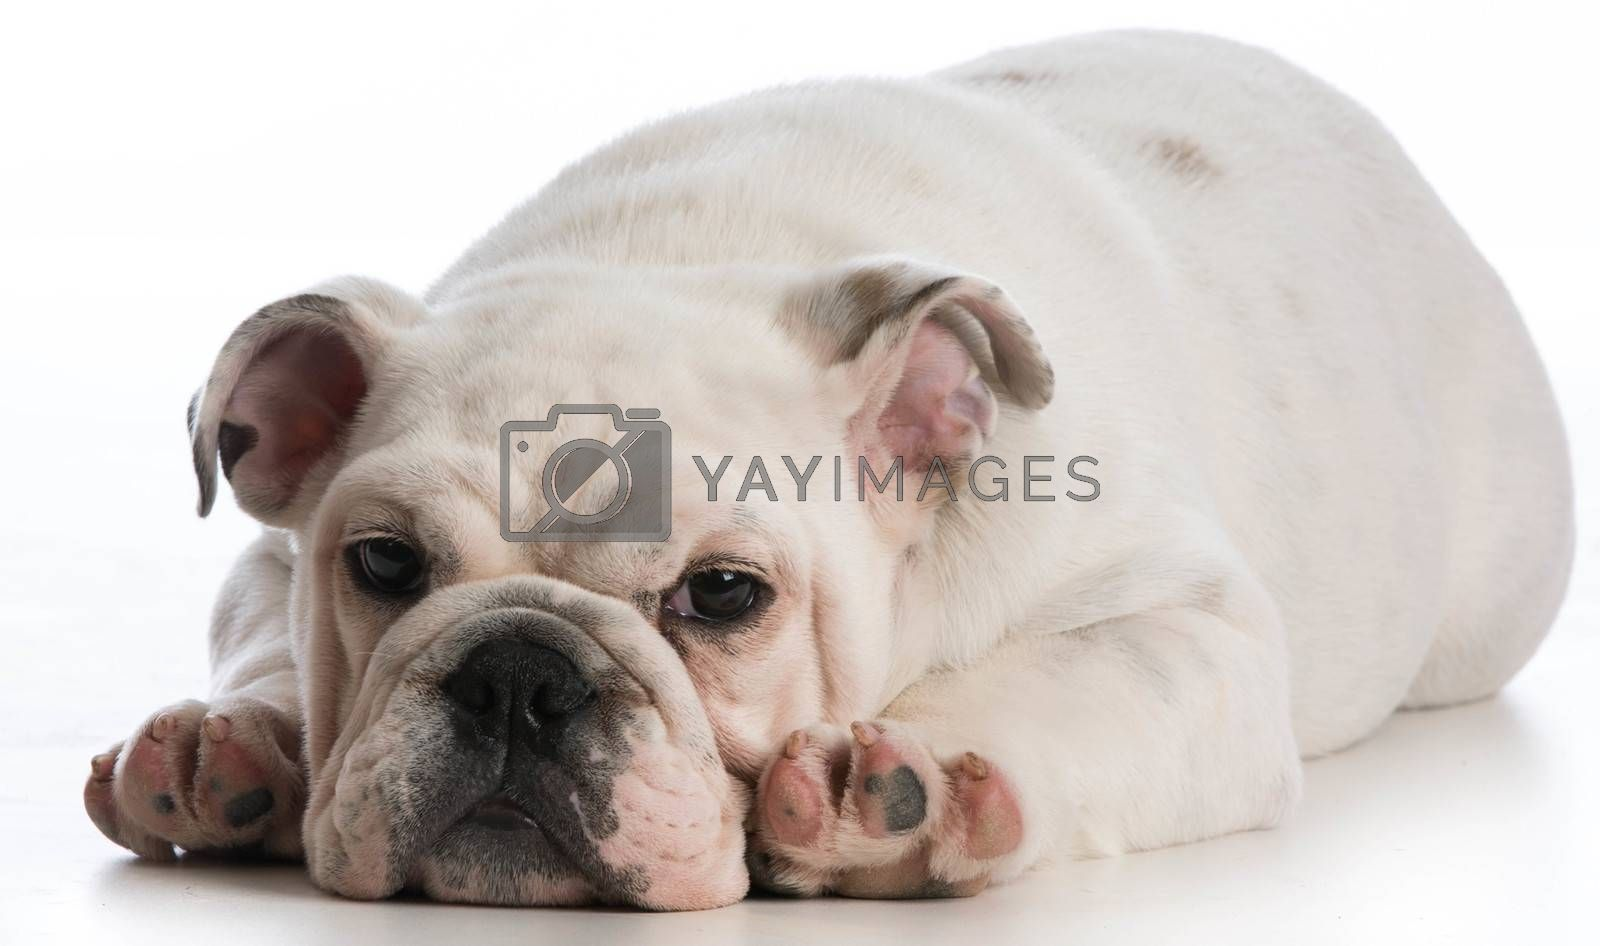 Royalty free image of cute puppy  by willeecole123